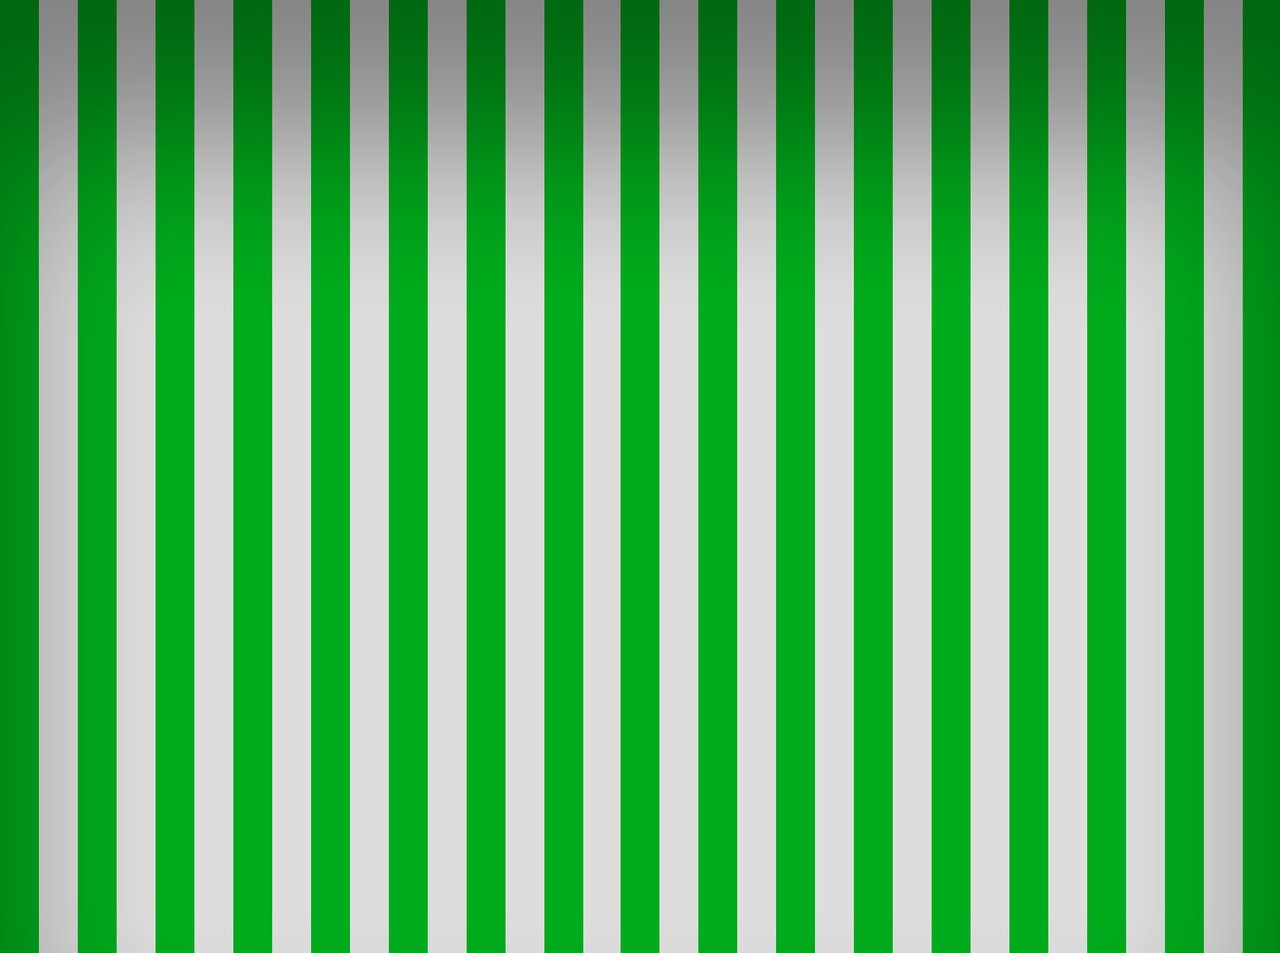 Photo Green White Striped Wallpaper By Itslippiagain On Striped Phone 1280x953